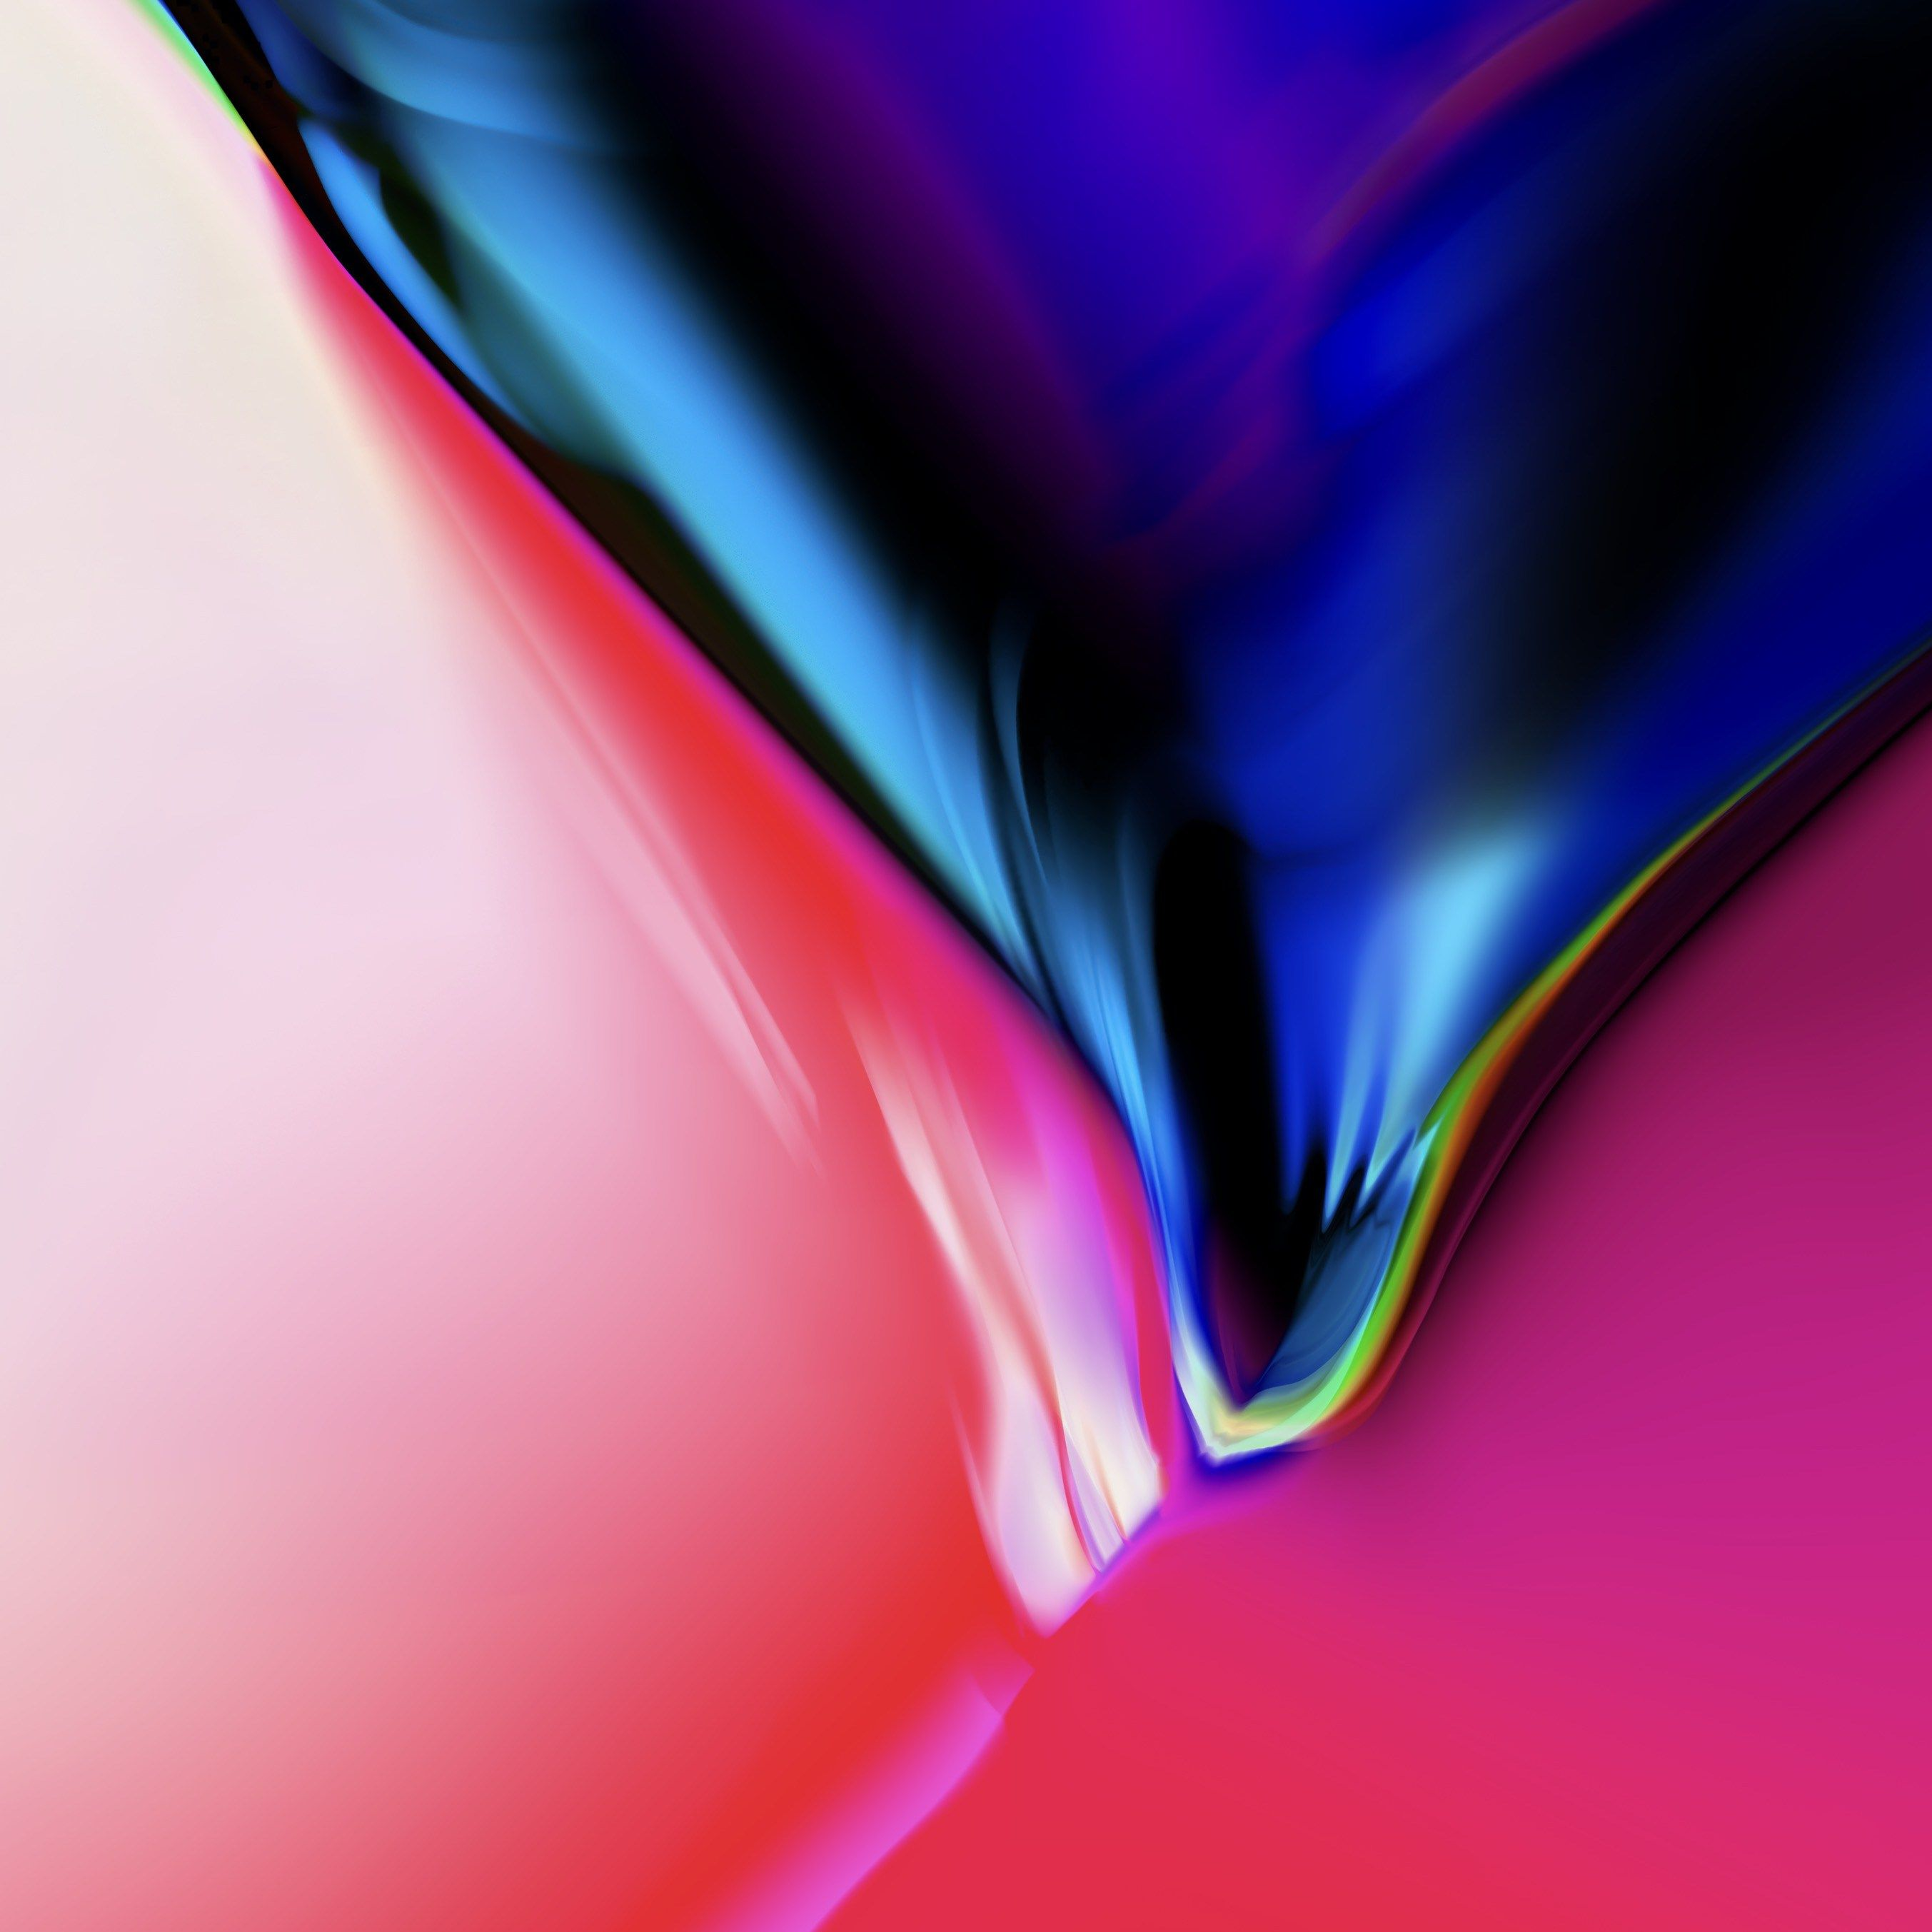 These 20 iOS 11 Wallpapers will Pretty up your